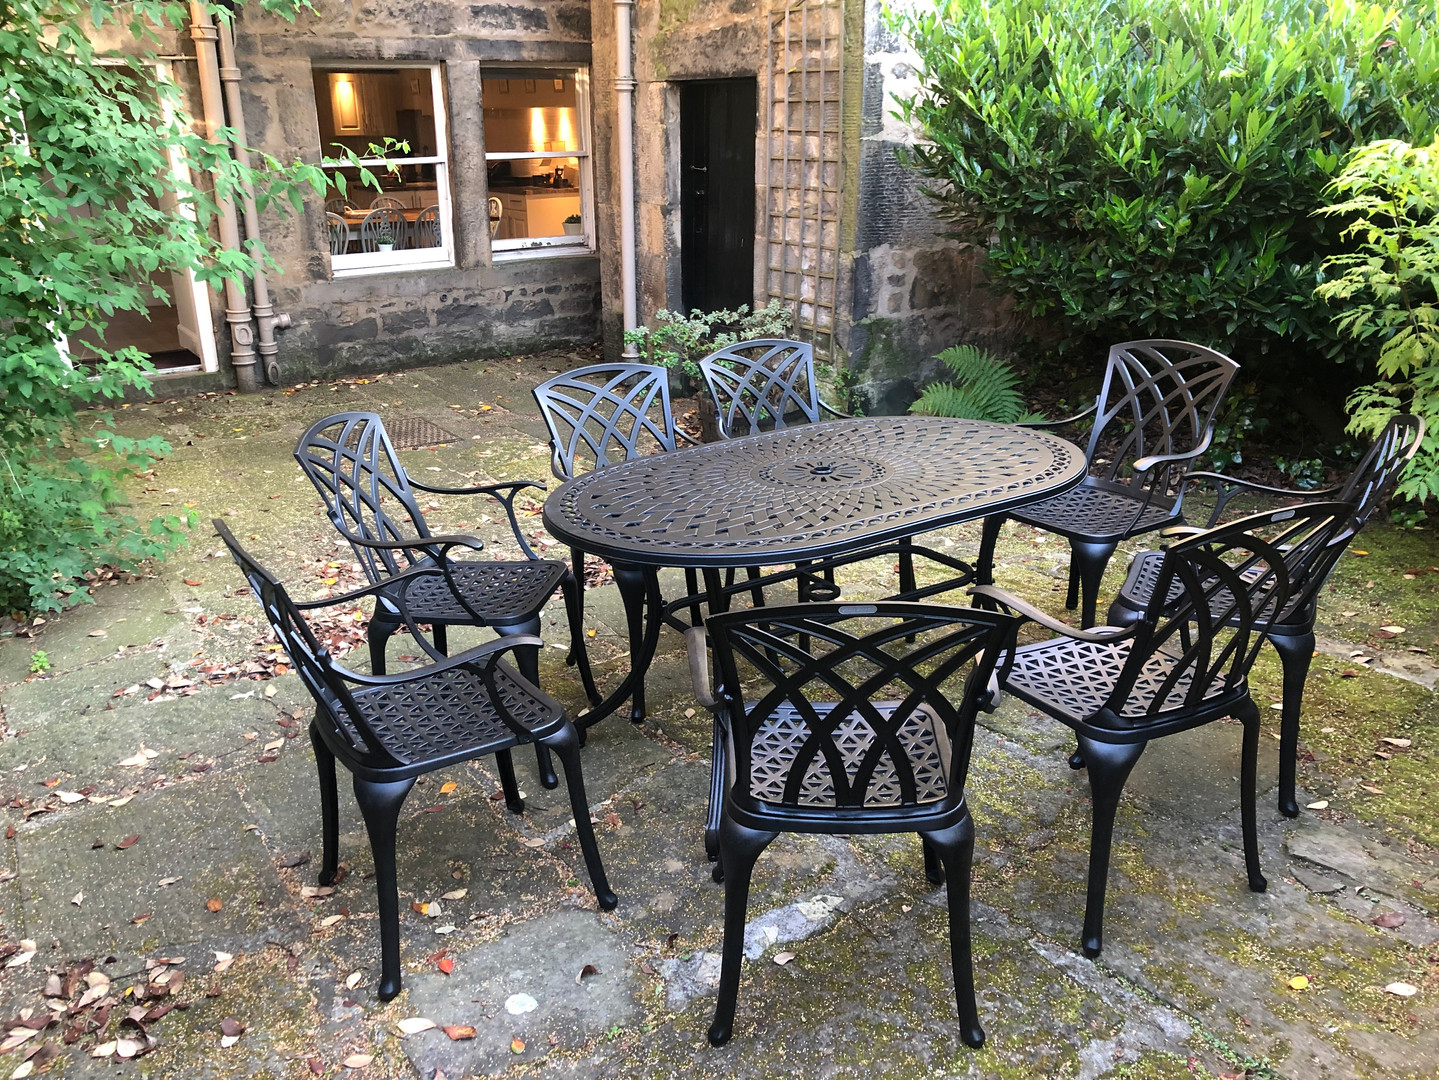 Outside area garden table